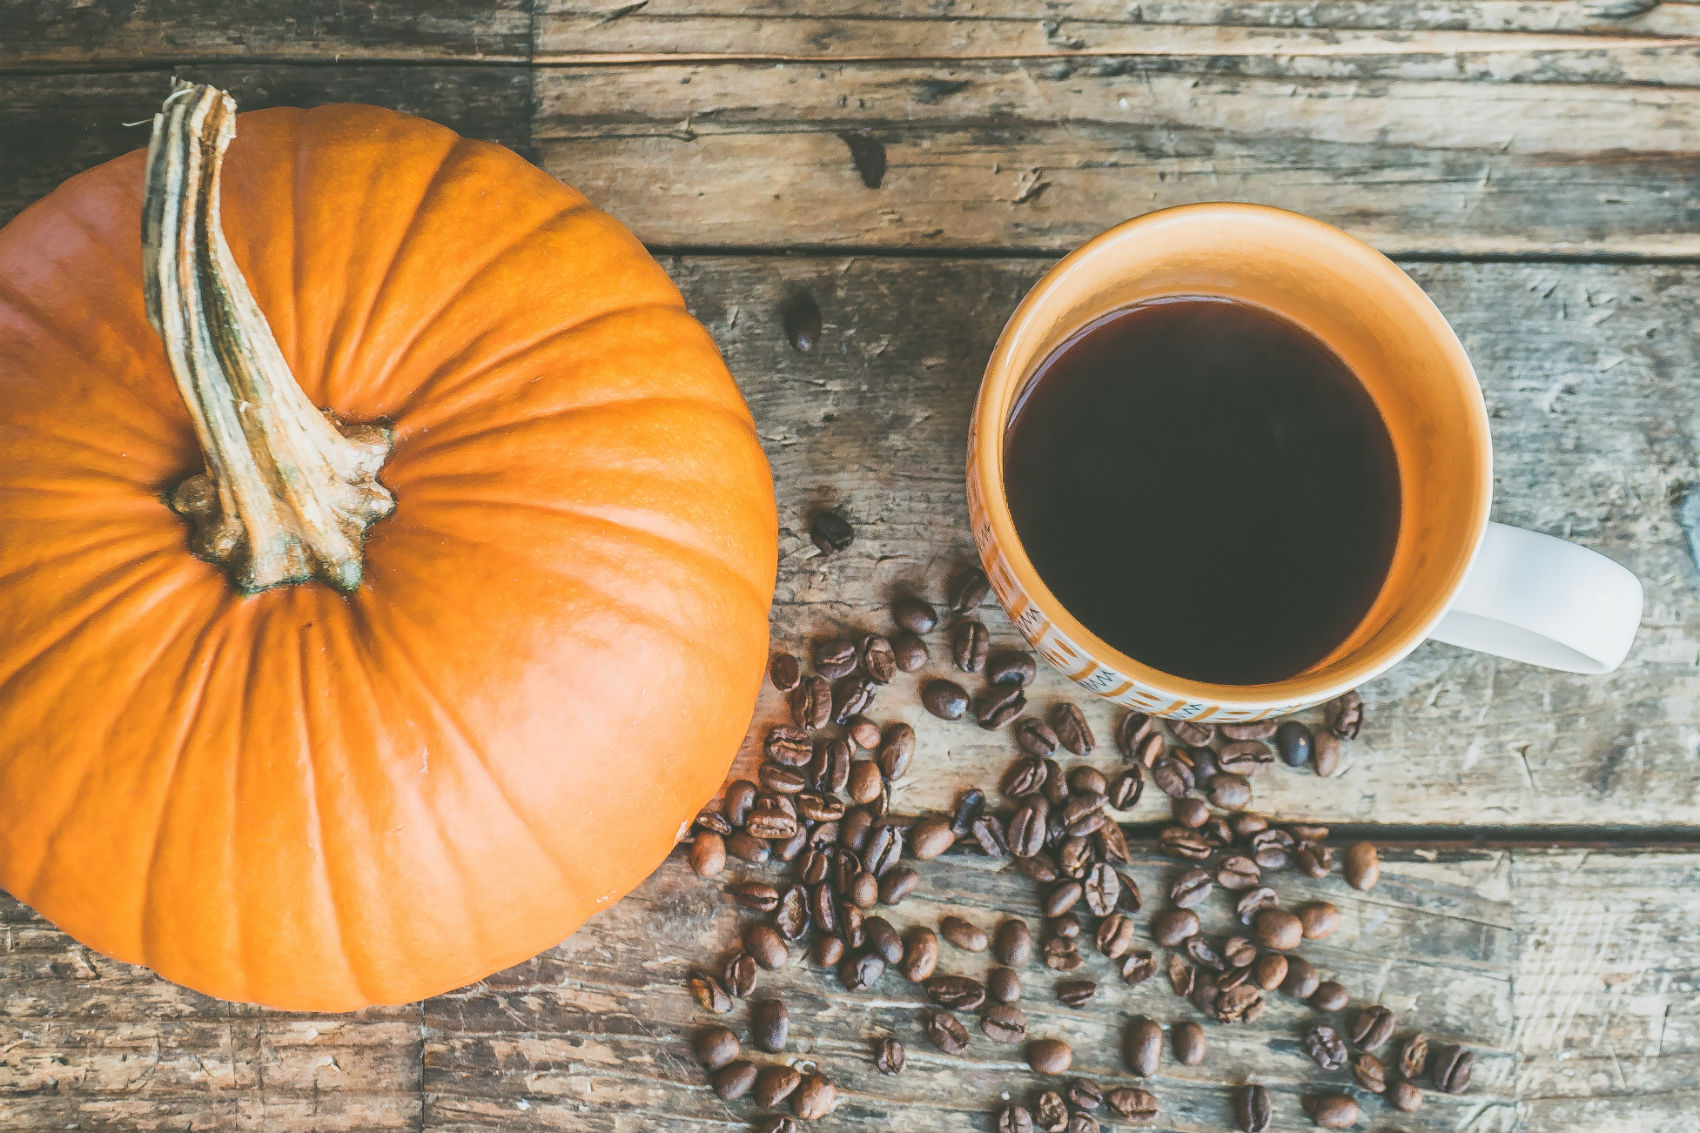 10 Ways to Eat Pumpkin—That Aren't Pie